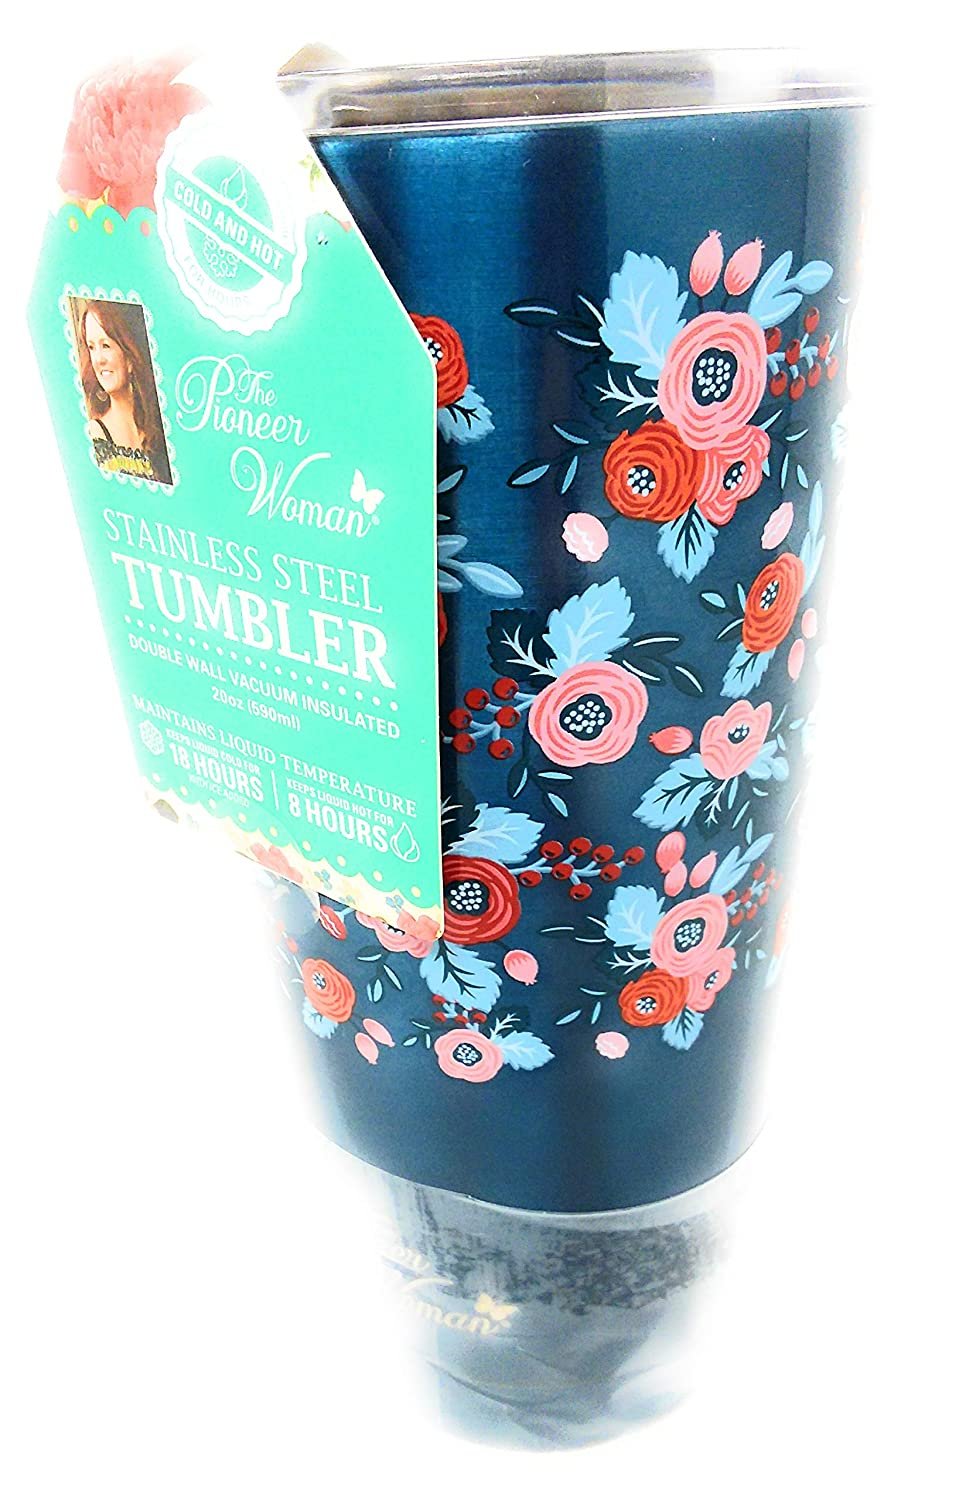 The Pioneer Woman Stainless Steel Tumbler 20 oz Many Colors Hot Cold Insulated 18 hours (Blue, 20 ounce)